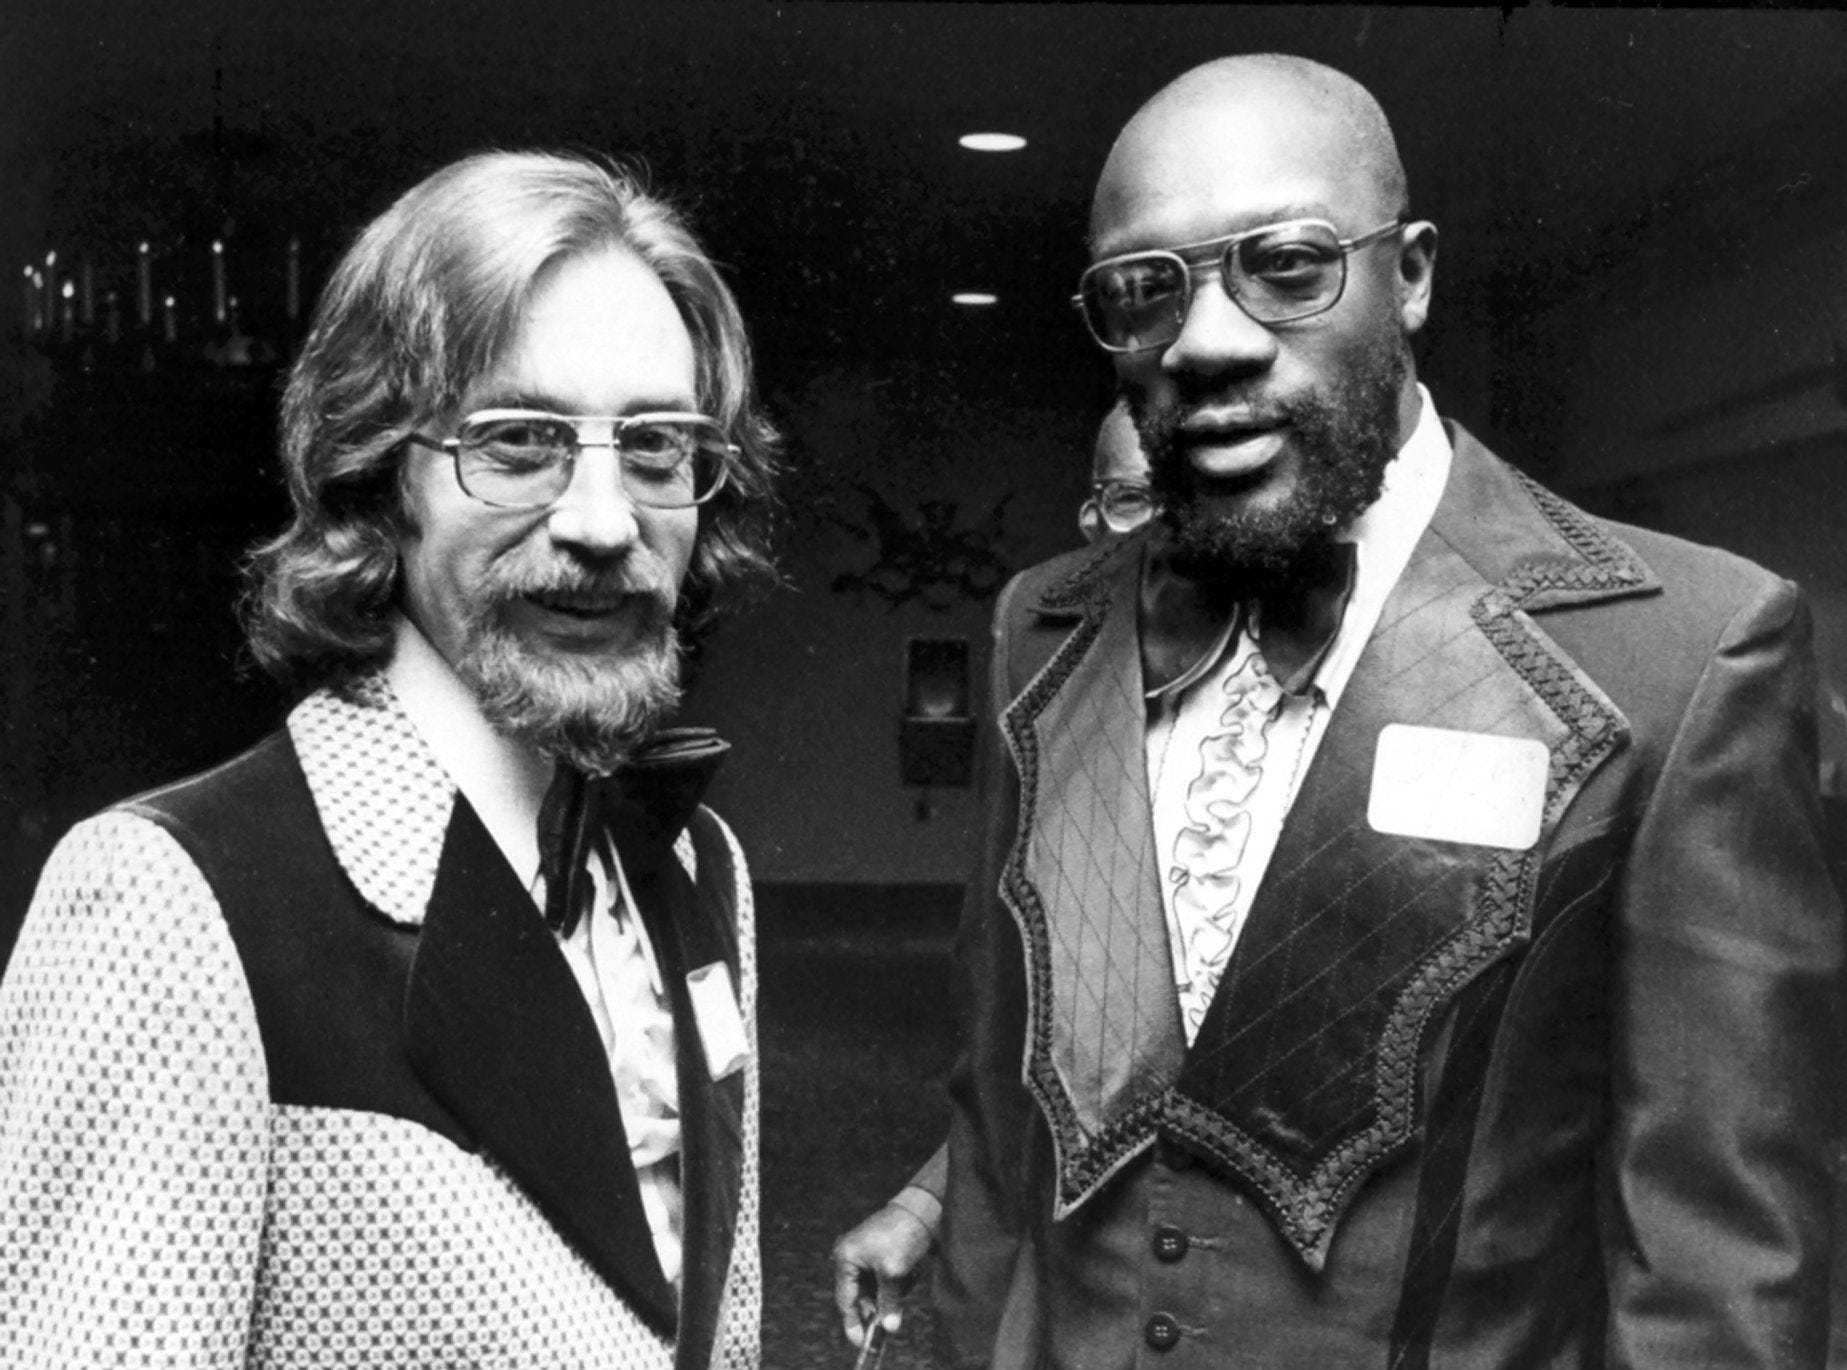 """STAX president James Stewart (Left) was on hand to congratulate Isaac Hayes on 14 Nov 1972 as Hayes was honored for writing the most performed rhythm and blues song of 1971. The honor was awarded for the """"Theme From Shaft"""" and was bestowed during the Broadcast Music, Inc. presentations at the Holiday Inn-Rivermont."""